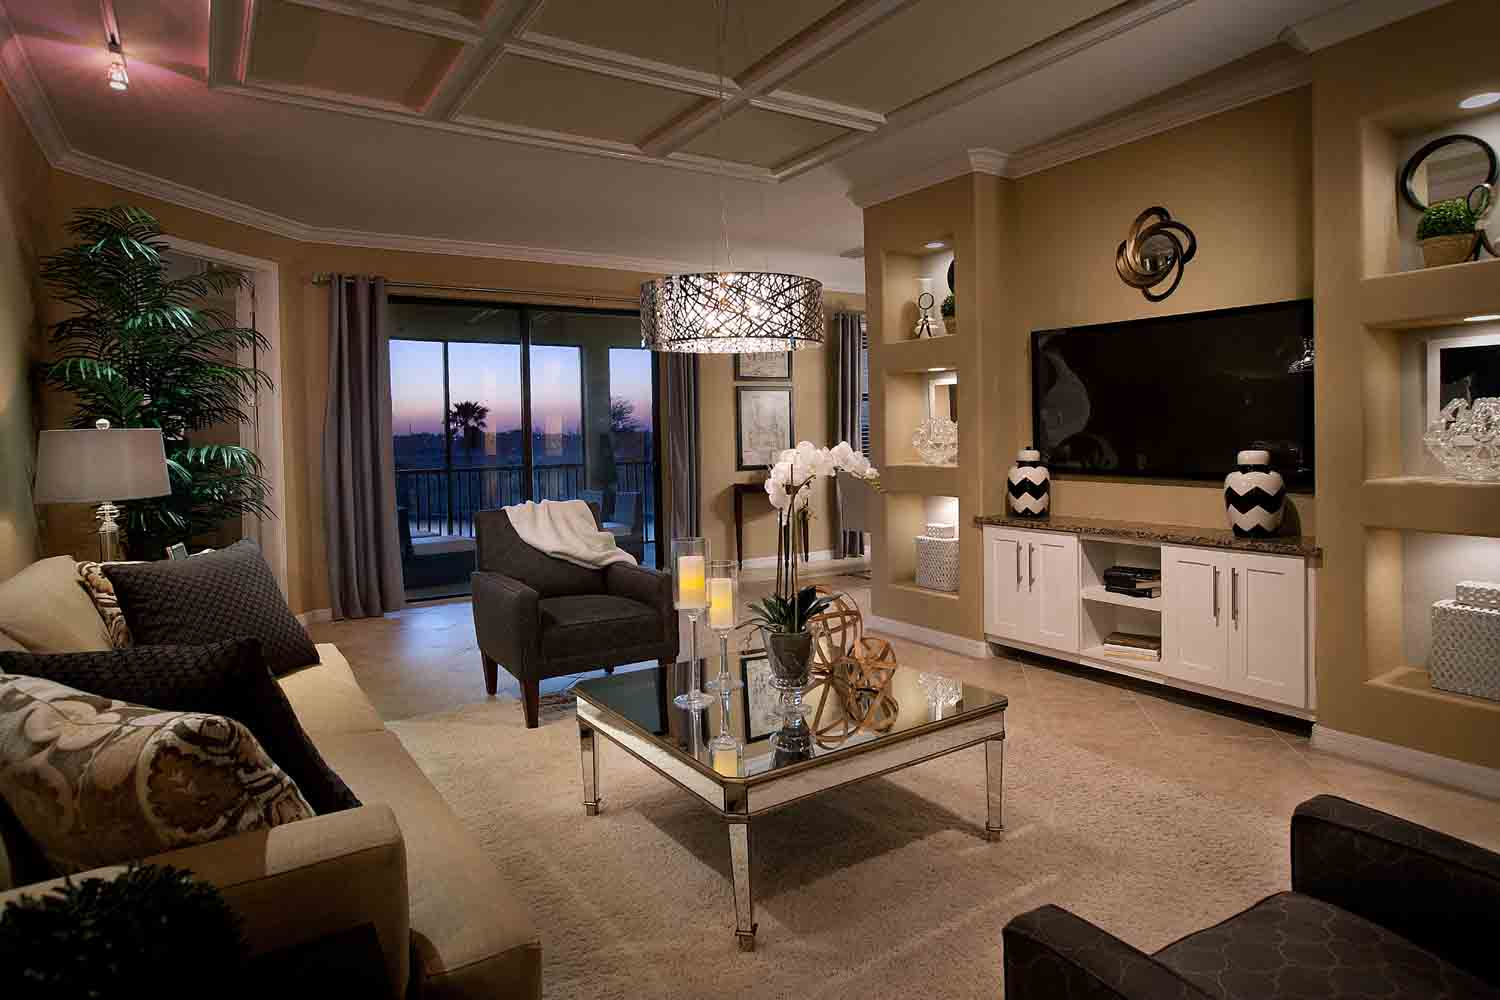 Clever Oleander Living Room Lennar To Show Models At Gran Paradiso March 2015 John Model Homes Living Rooms Instagram Model Homes Living Rooms living room Model Homes Living Rooms